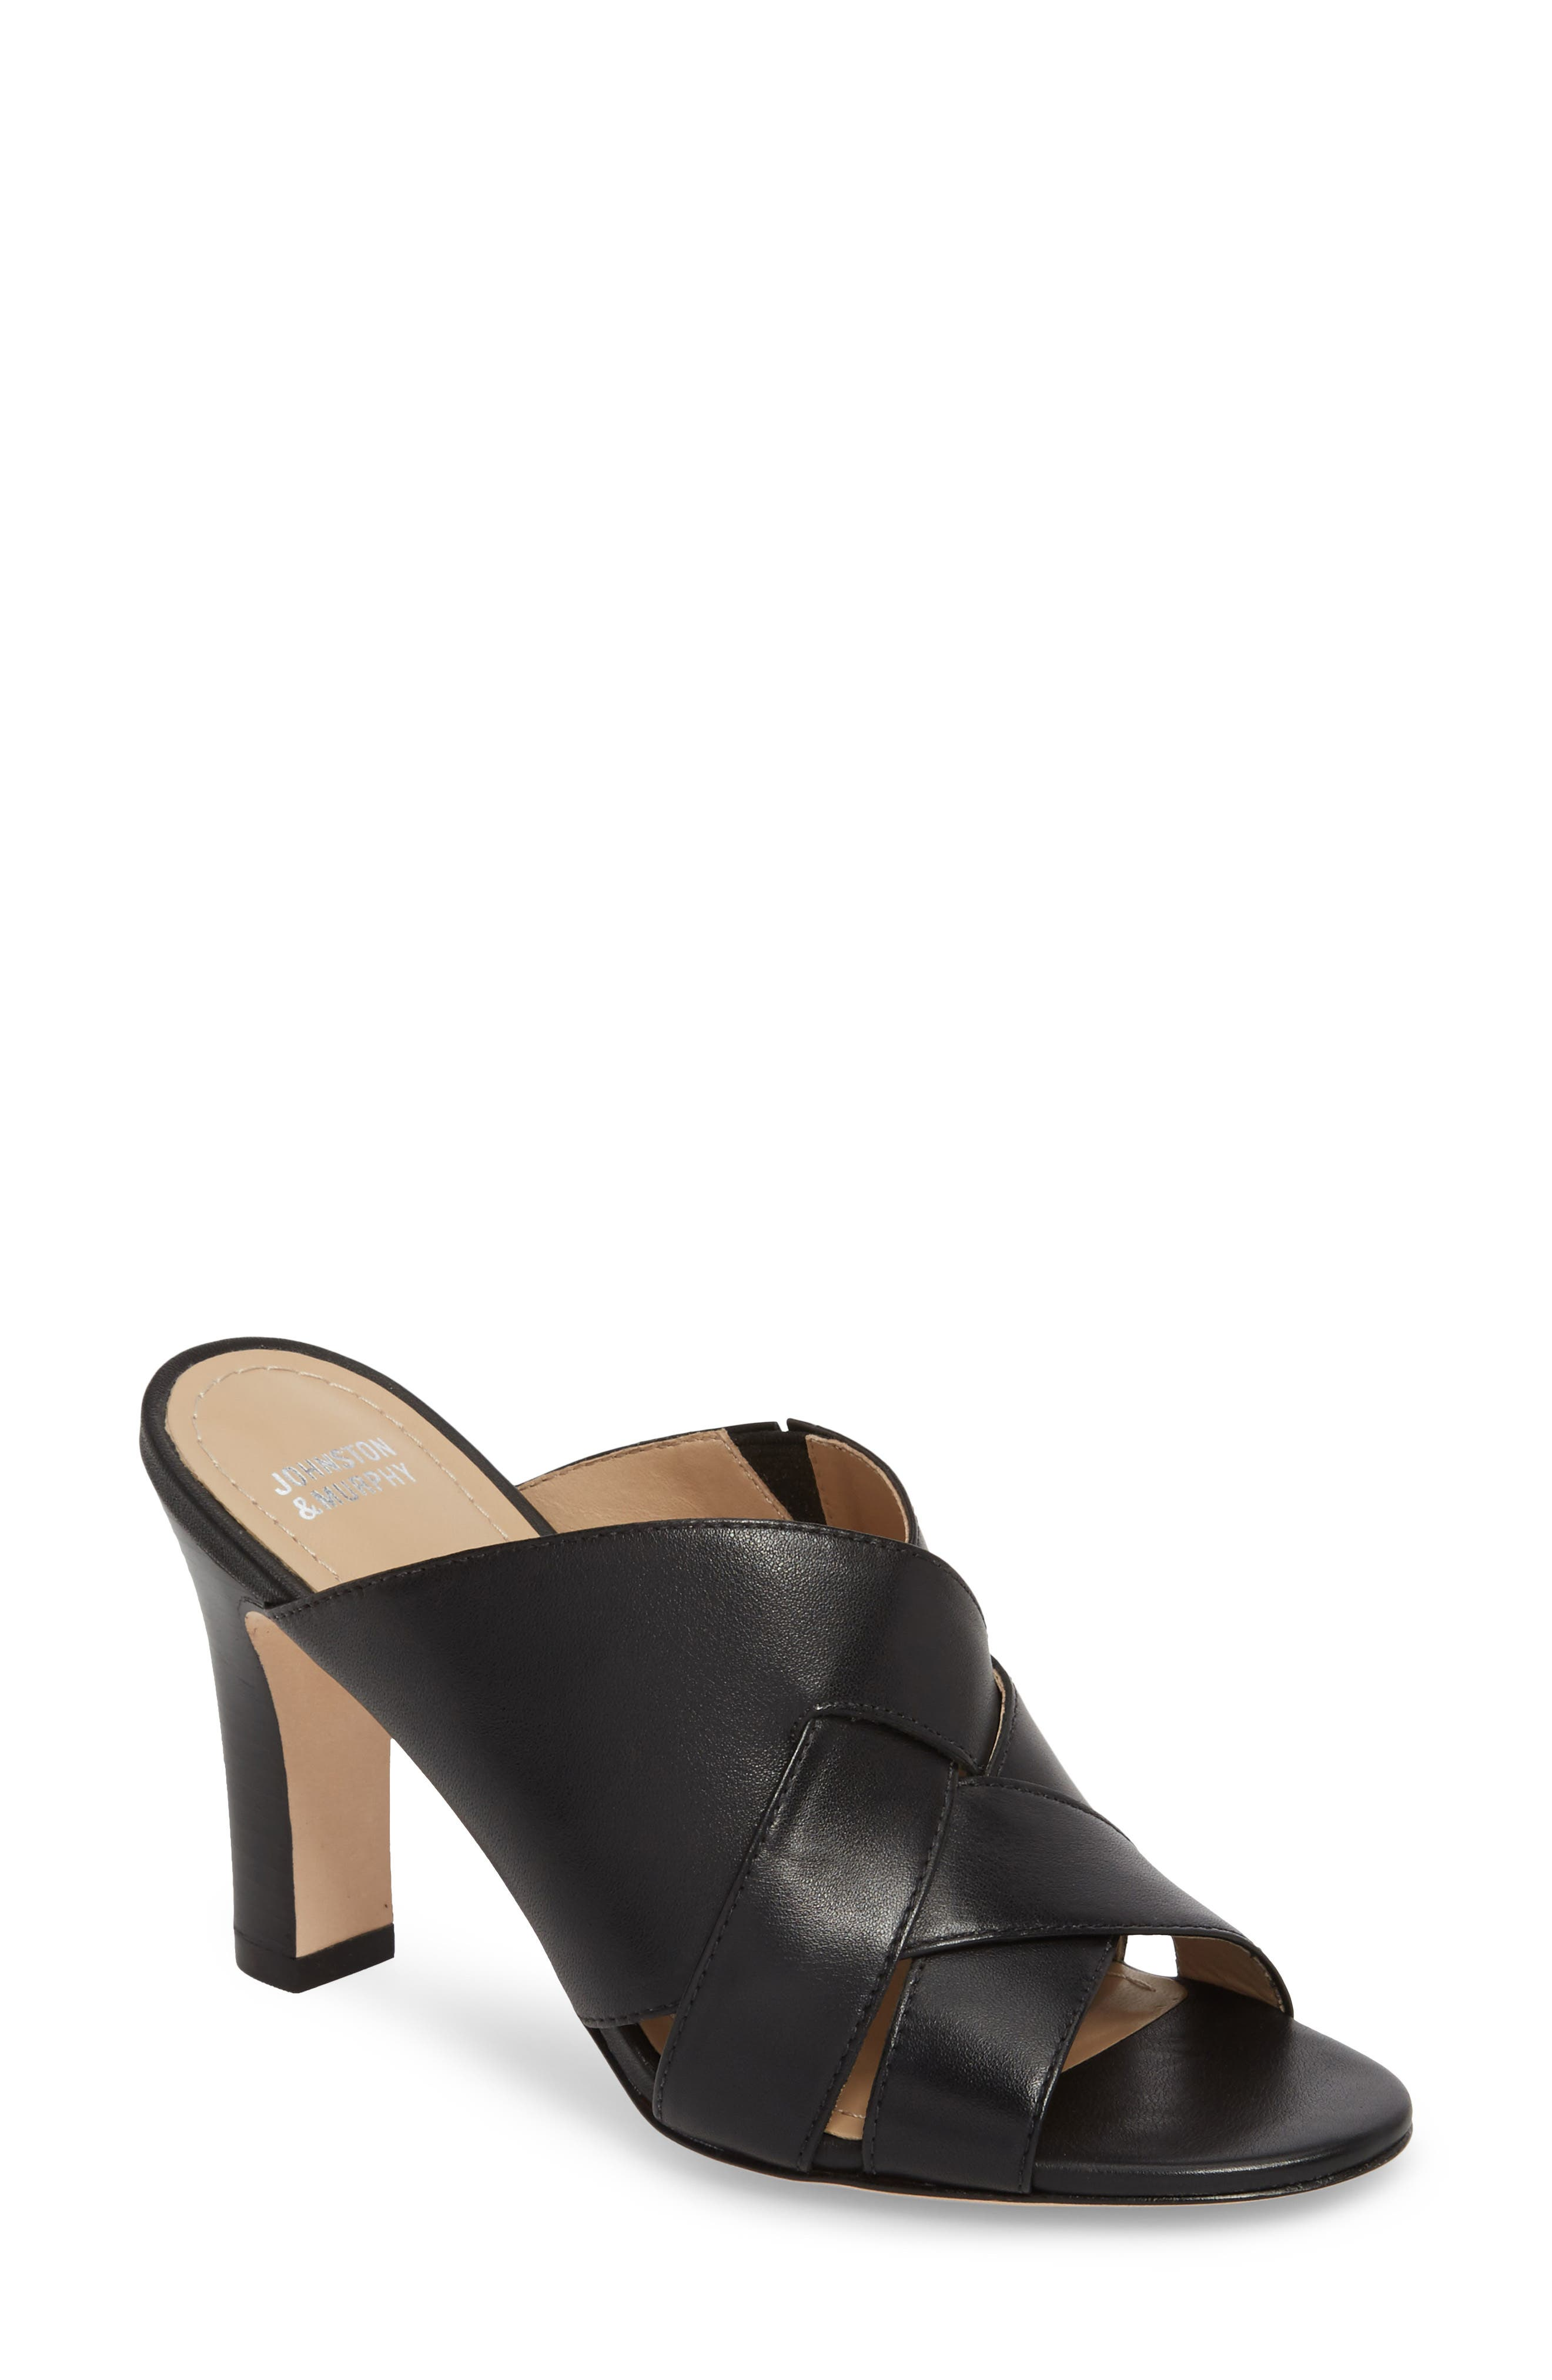 Carrie Mule Sandal,                         Main,                         color, BLACK LEATHER